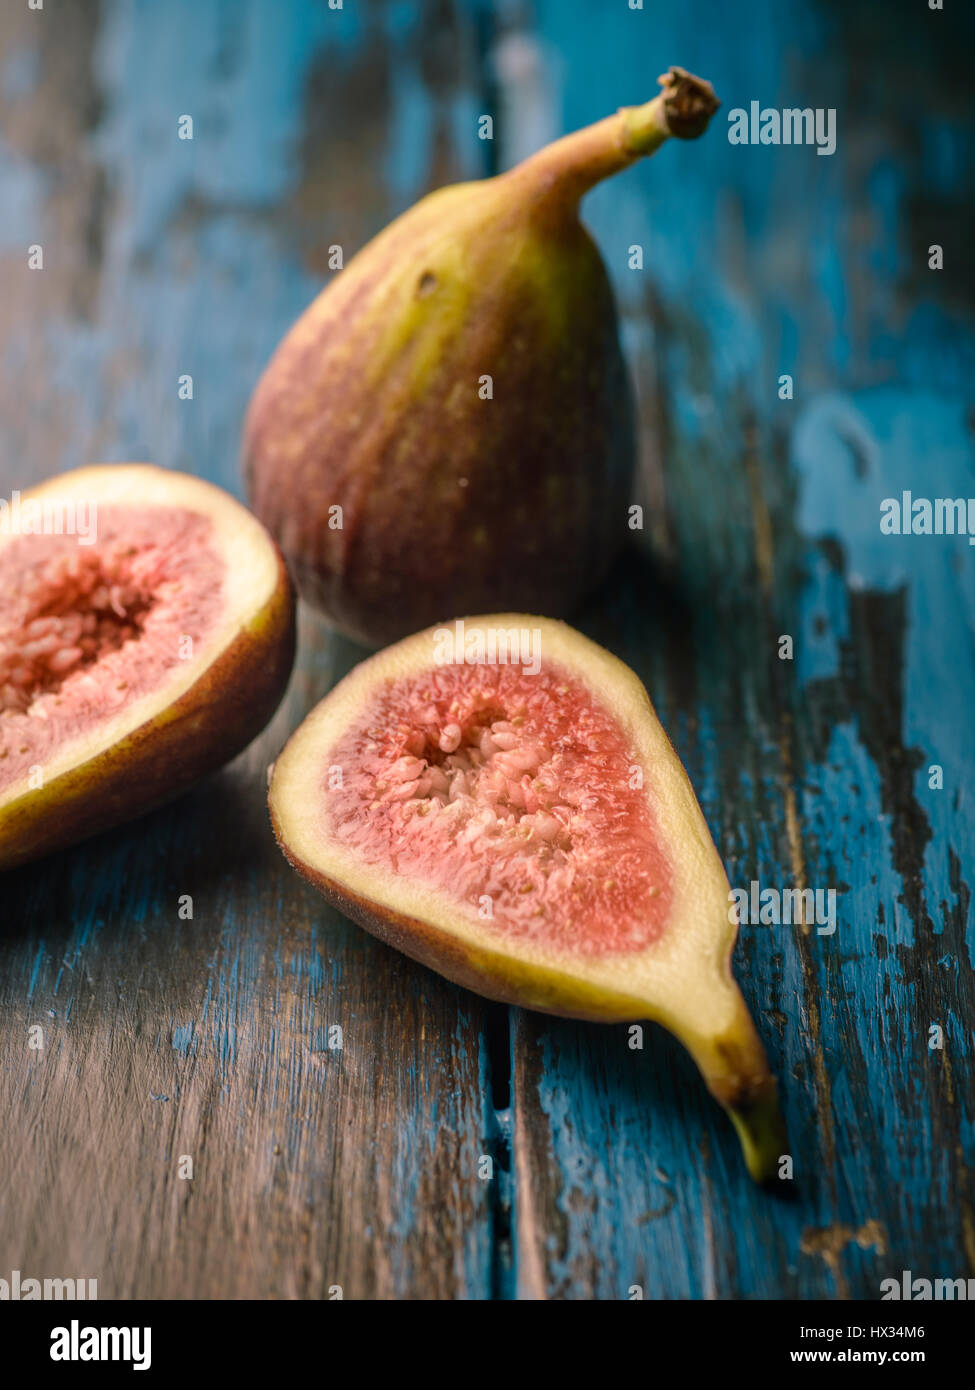 Close-up of figs on distressed wooden tabletop - Stock Image